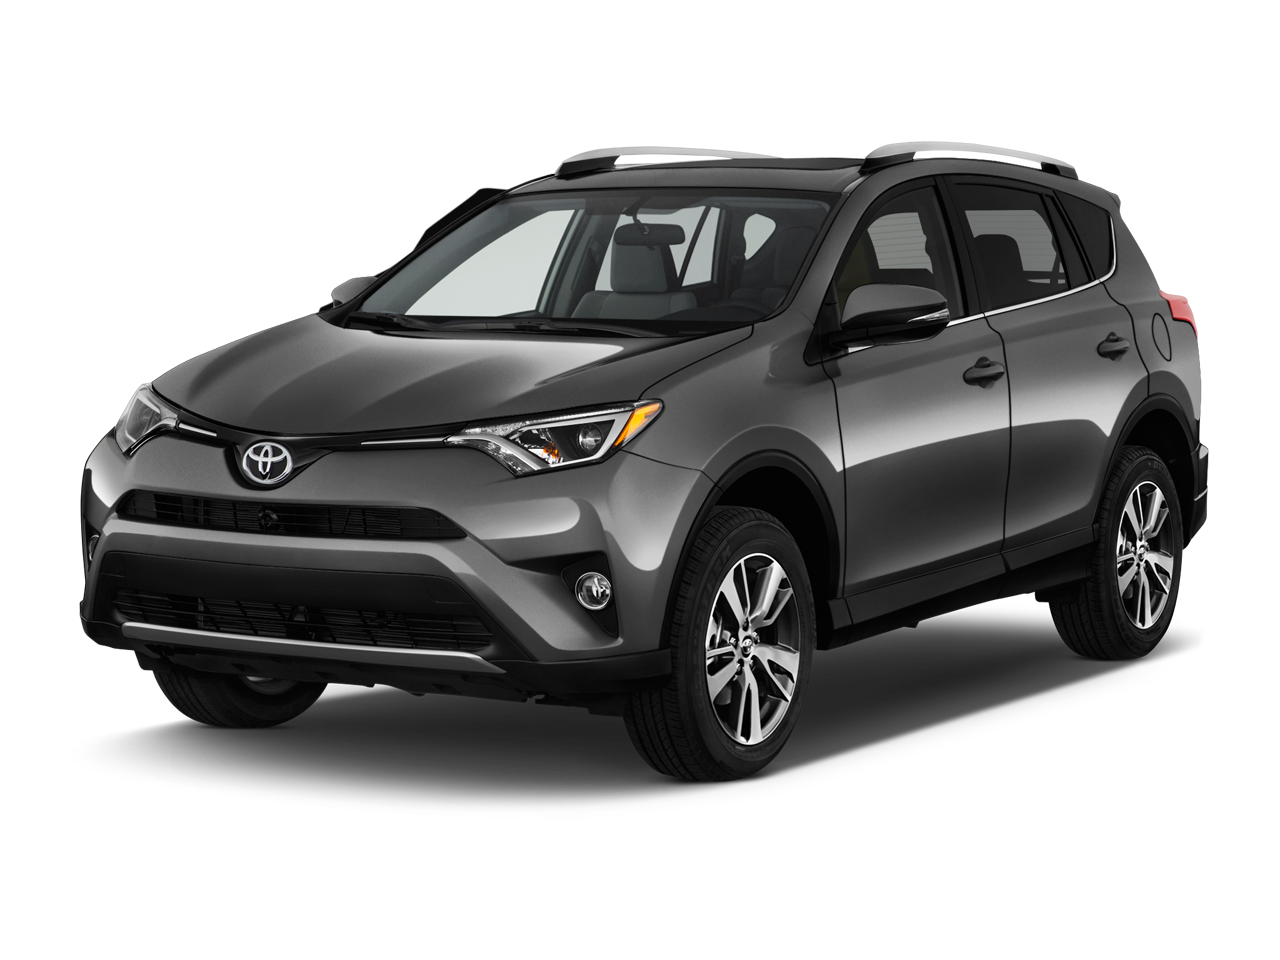 new 2017 toyota rav4 hybrid xle near morristown nj toyota of morristown. Black Bedroom Furniture Sets. Home Design Ideas